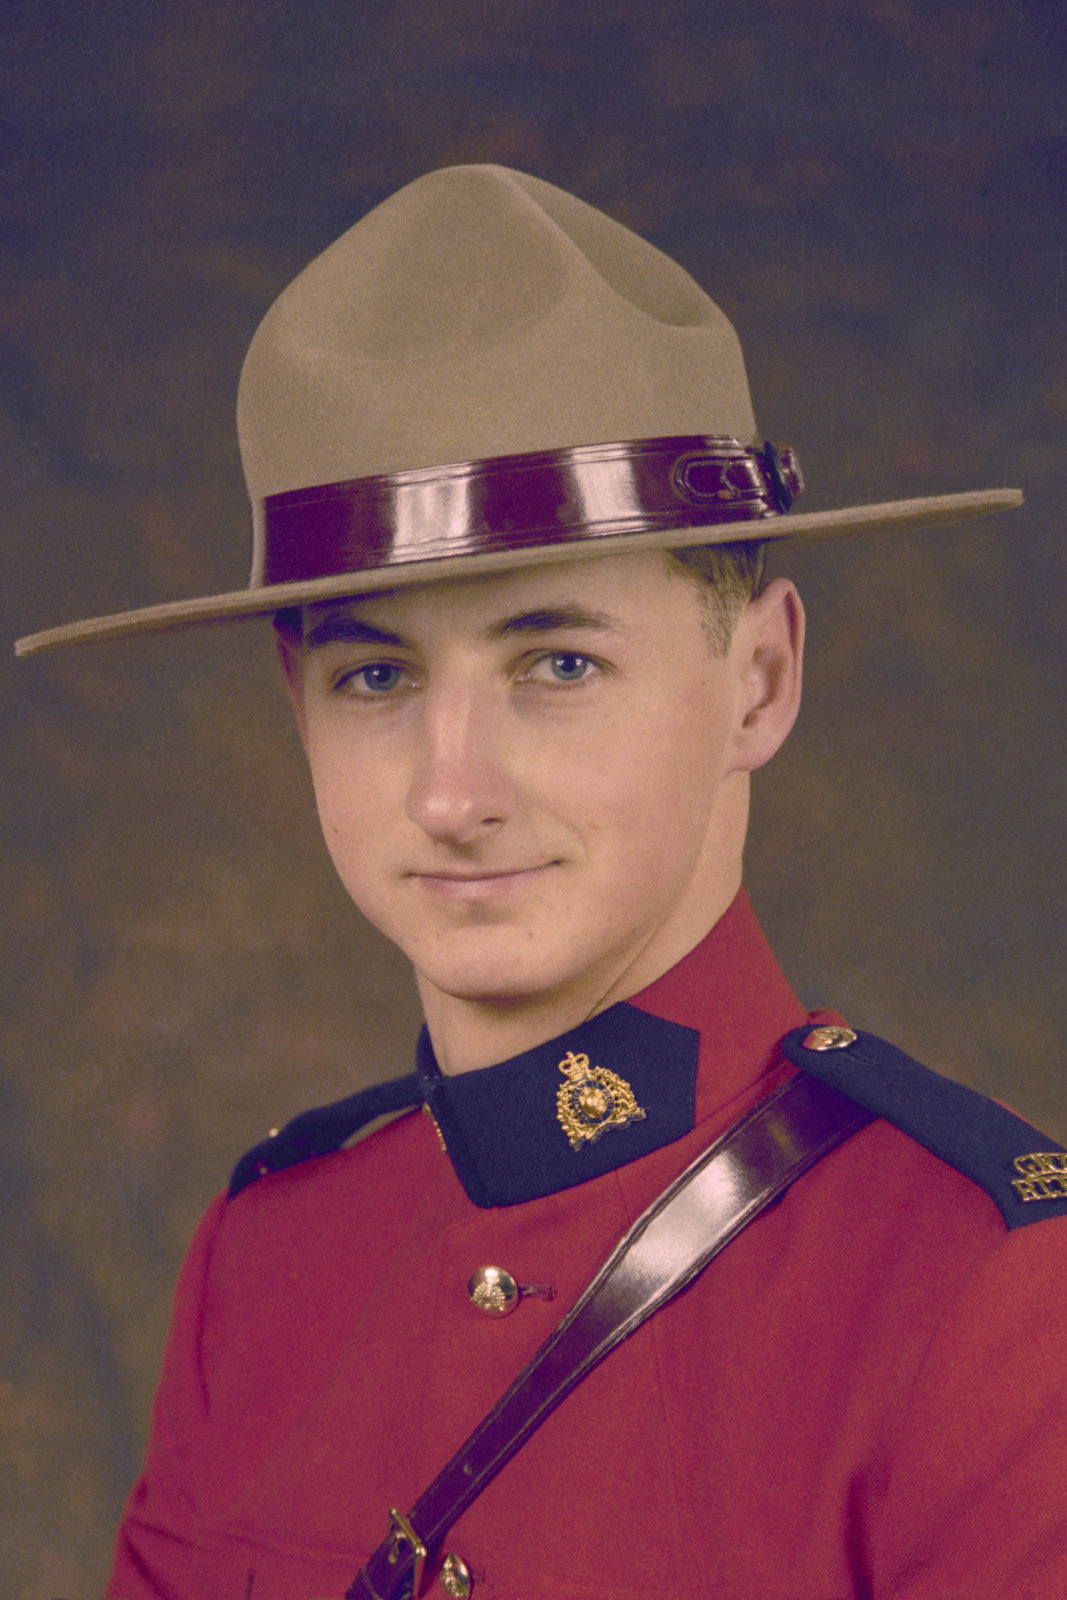 Constable Thomas James Agar– © Her Majesty the Queen in Right of Canada as represented by the Royal Canadian Mounted Police